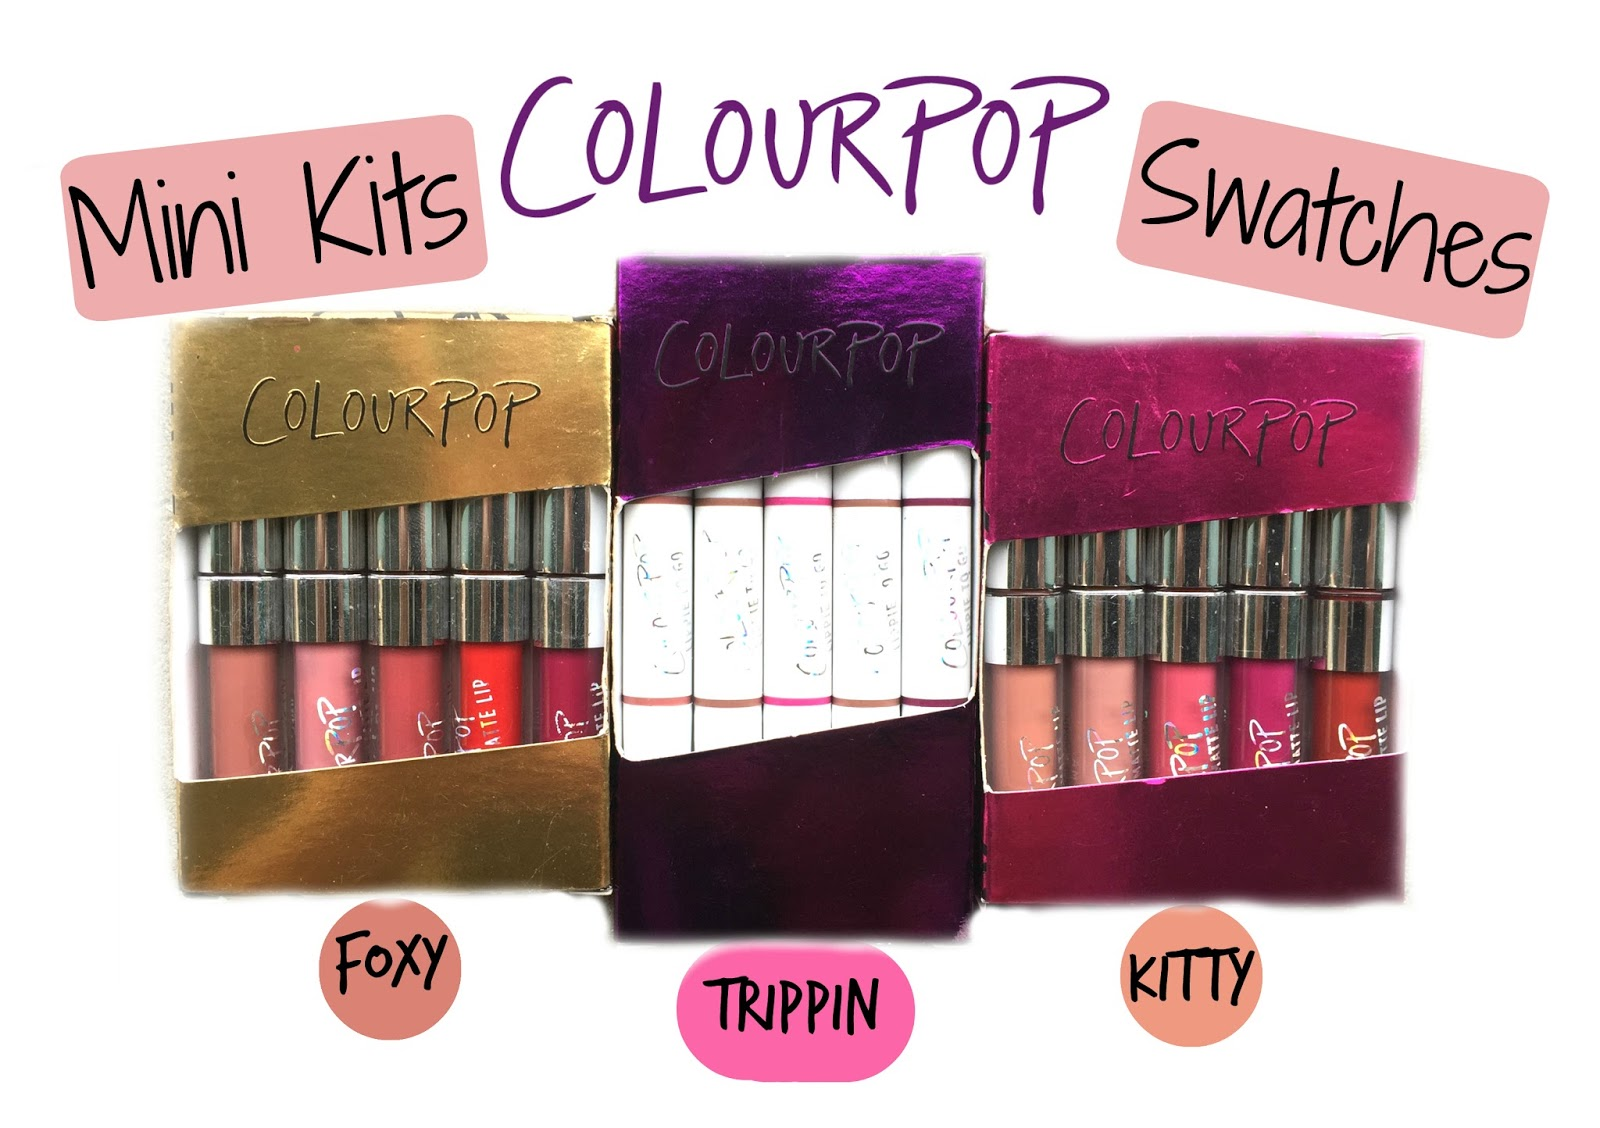 colourpop mini kits swatches foxy trippin kitty